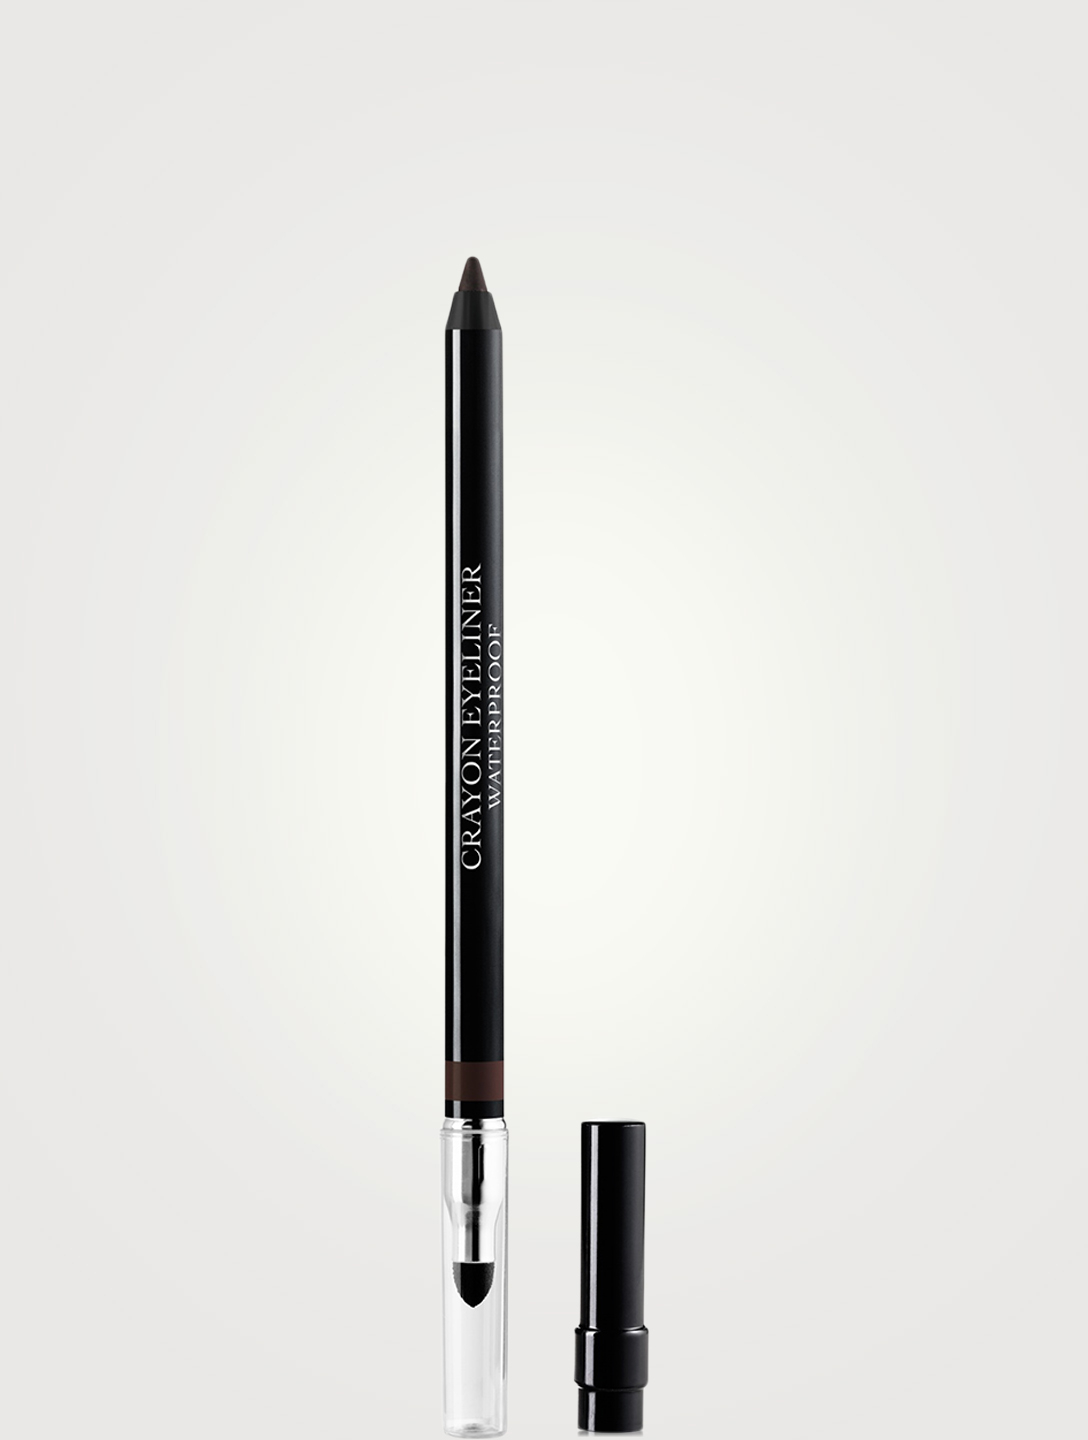 DIOR Long-wear Waterproof Eyeliner Pencil Beauty Brown